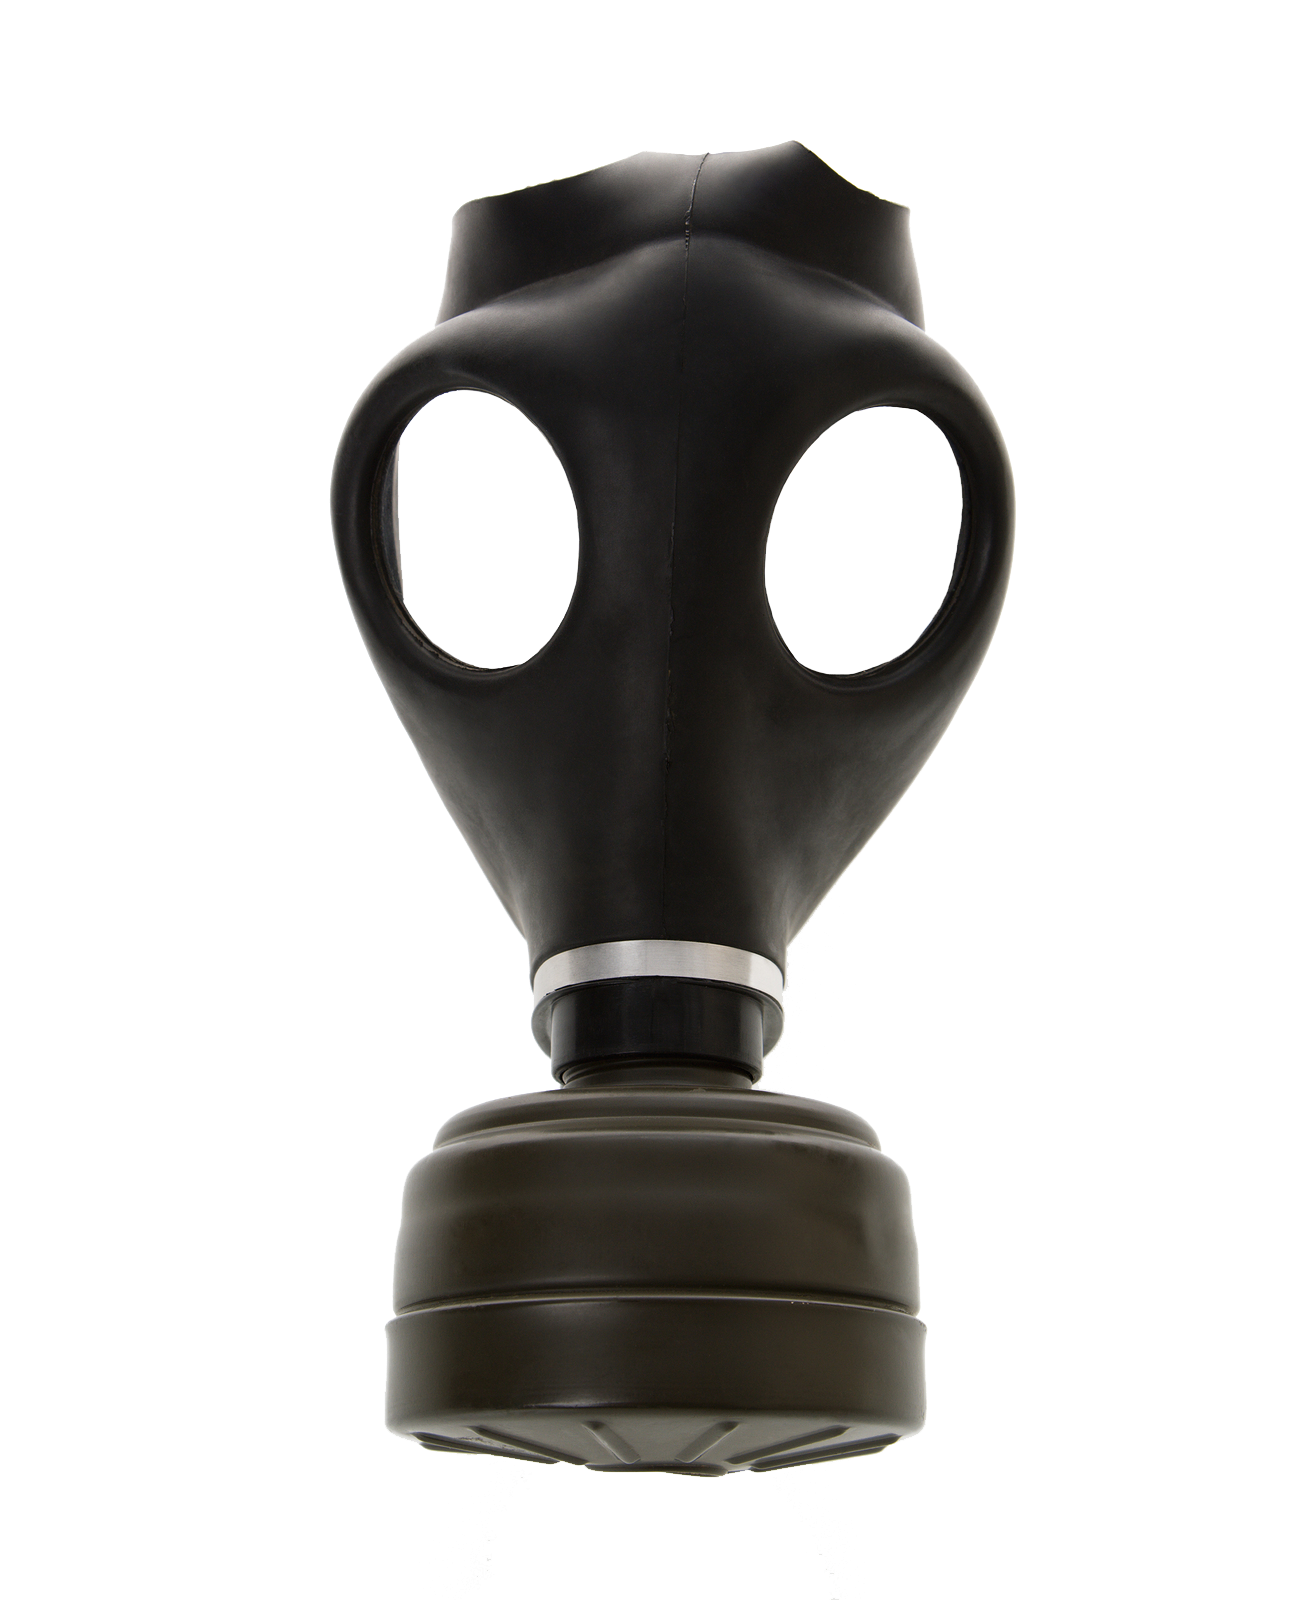 gas mask file png #39155